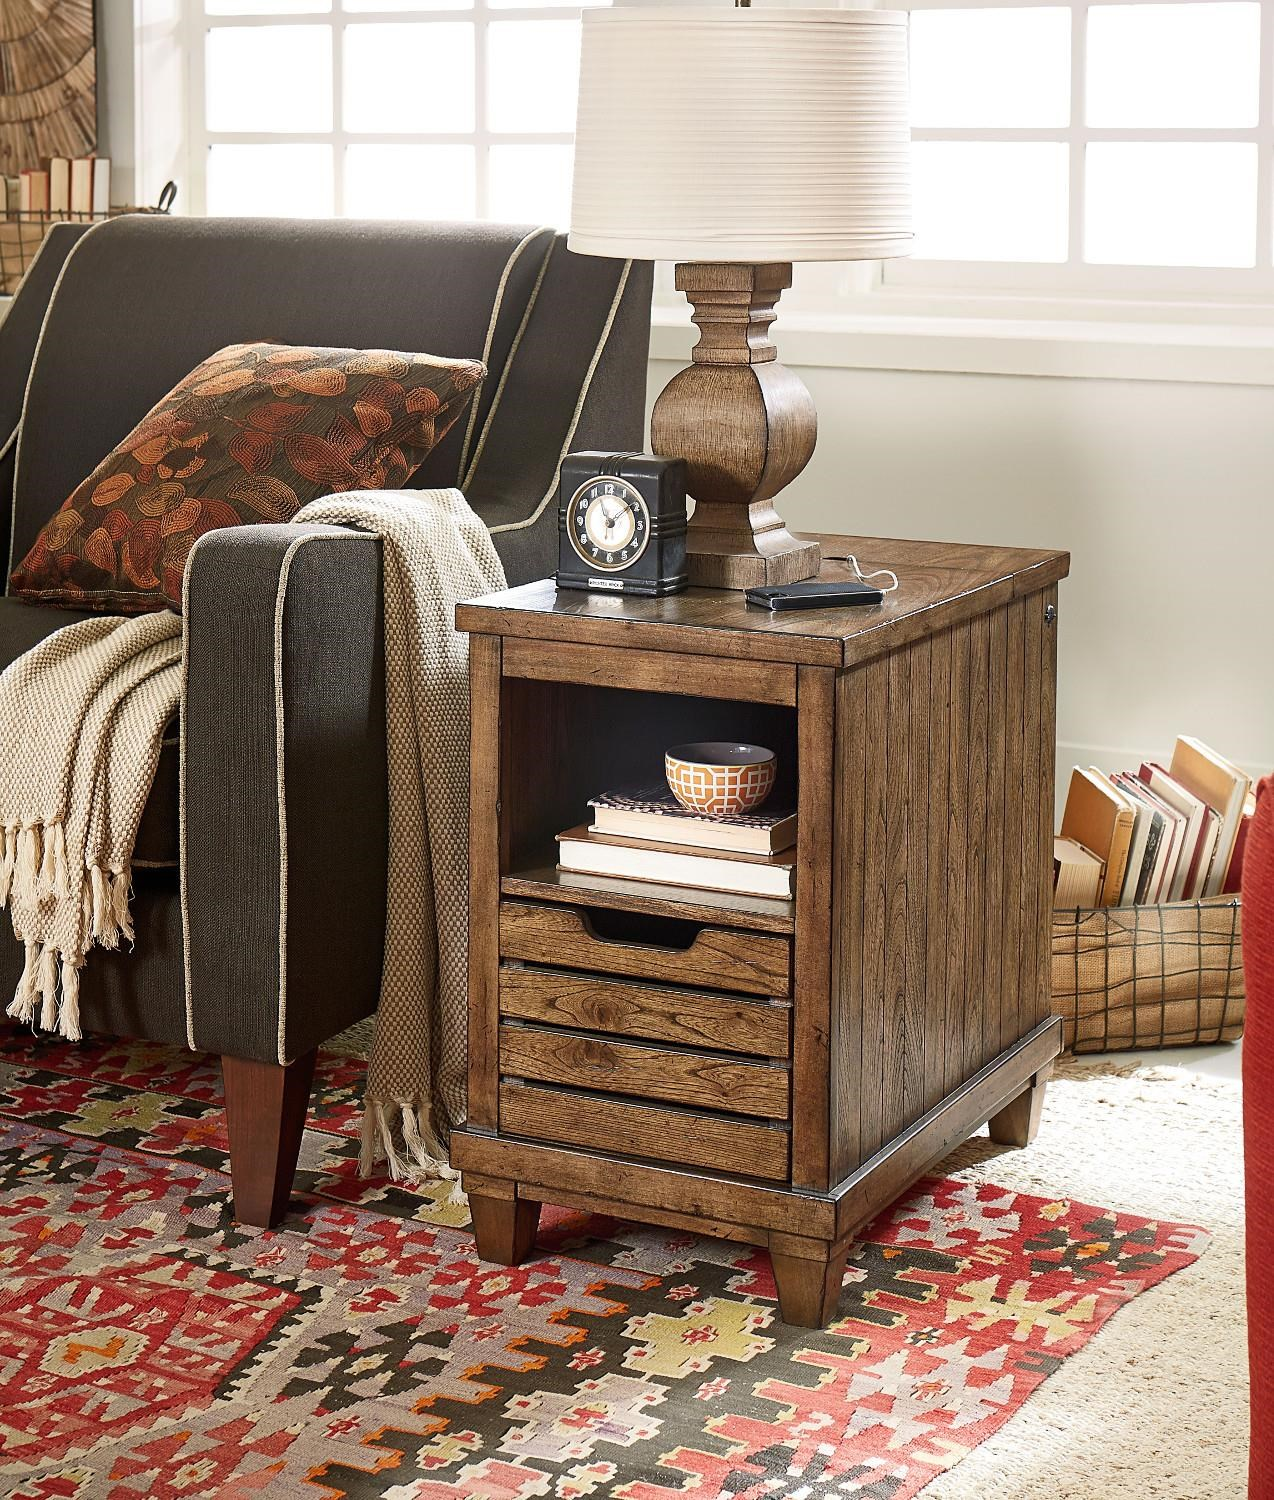 Morris Home Easter View Easter View Chairside Table w/Charging - Item Number: 811303824